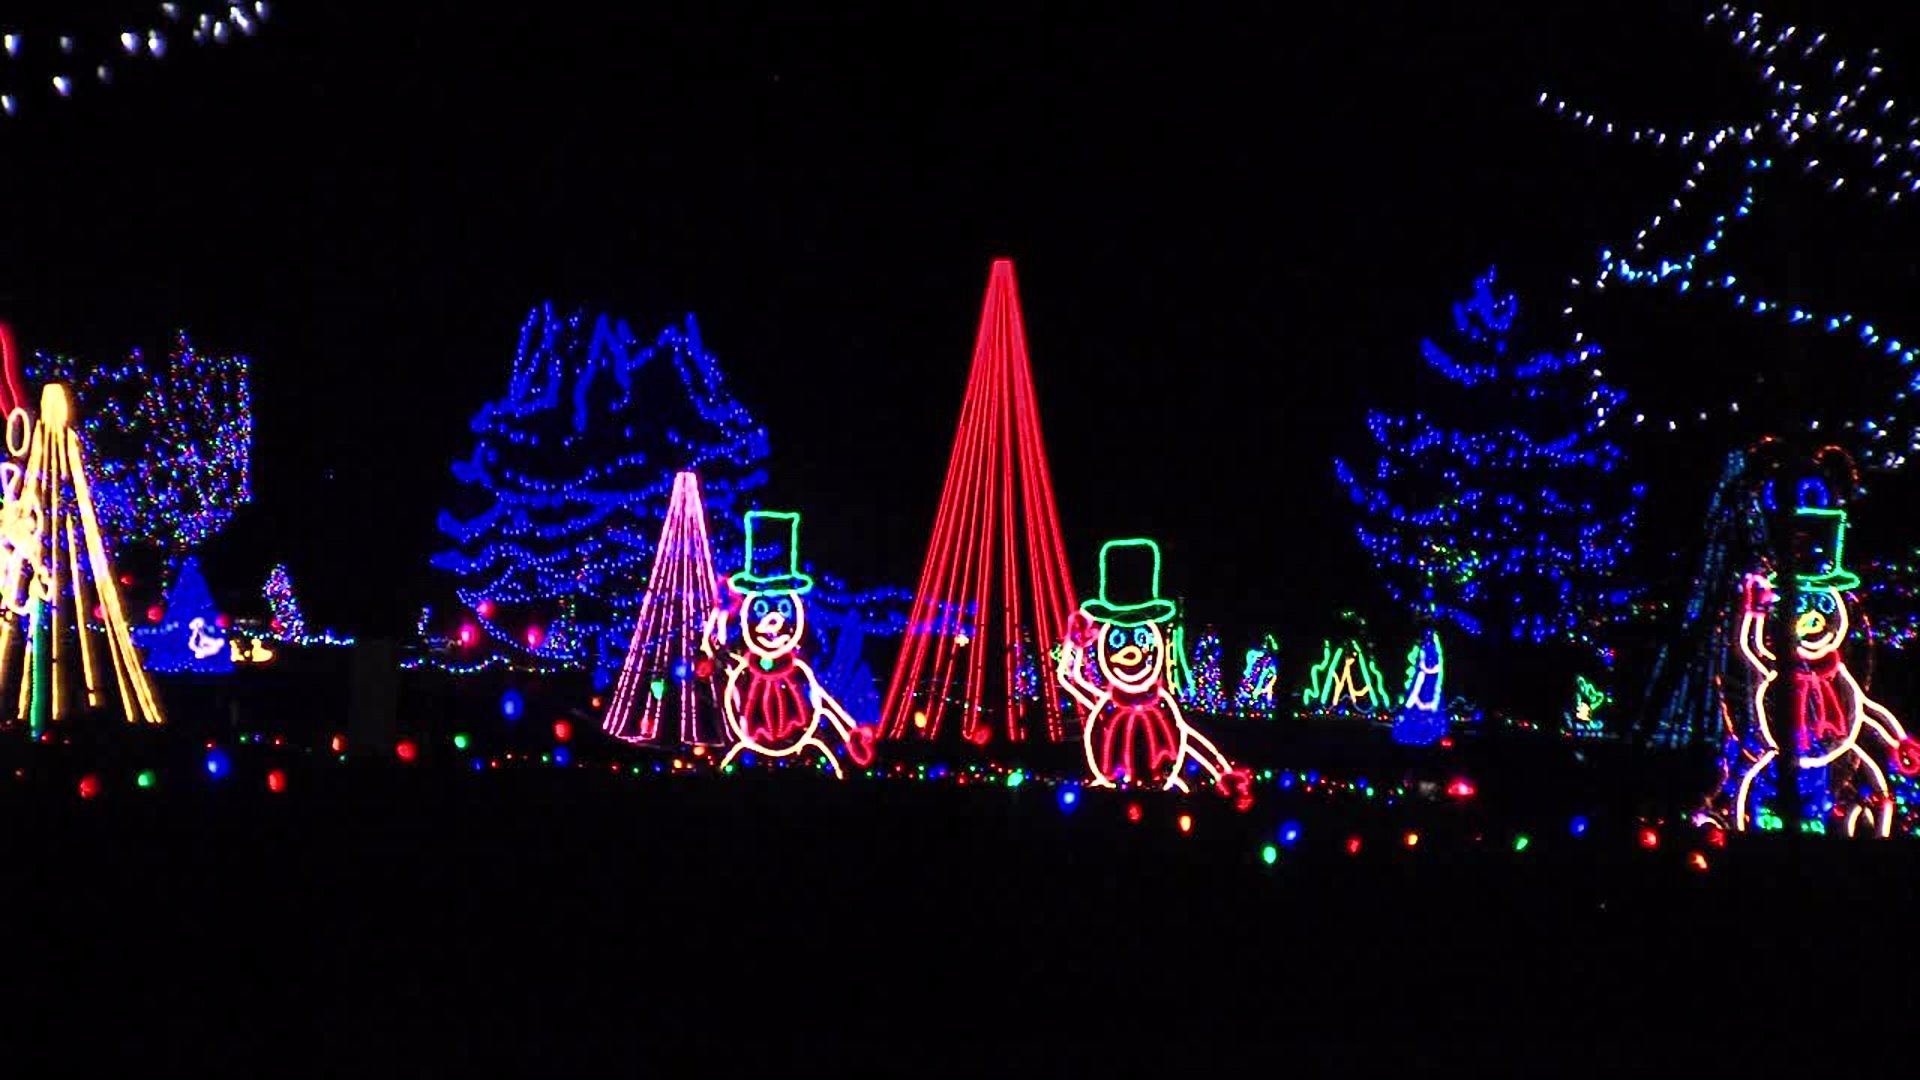 Christmas At The Park 2020 Longview Jackson County Parks + Rec cancels all events for 2020 except